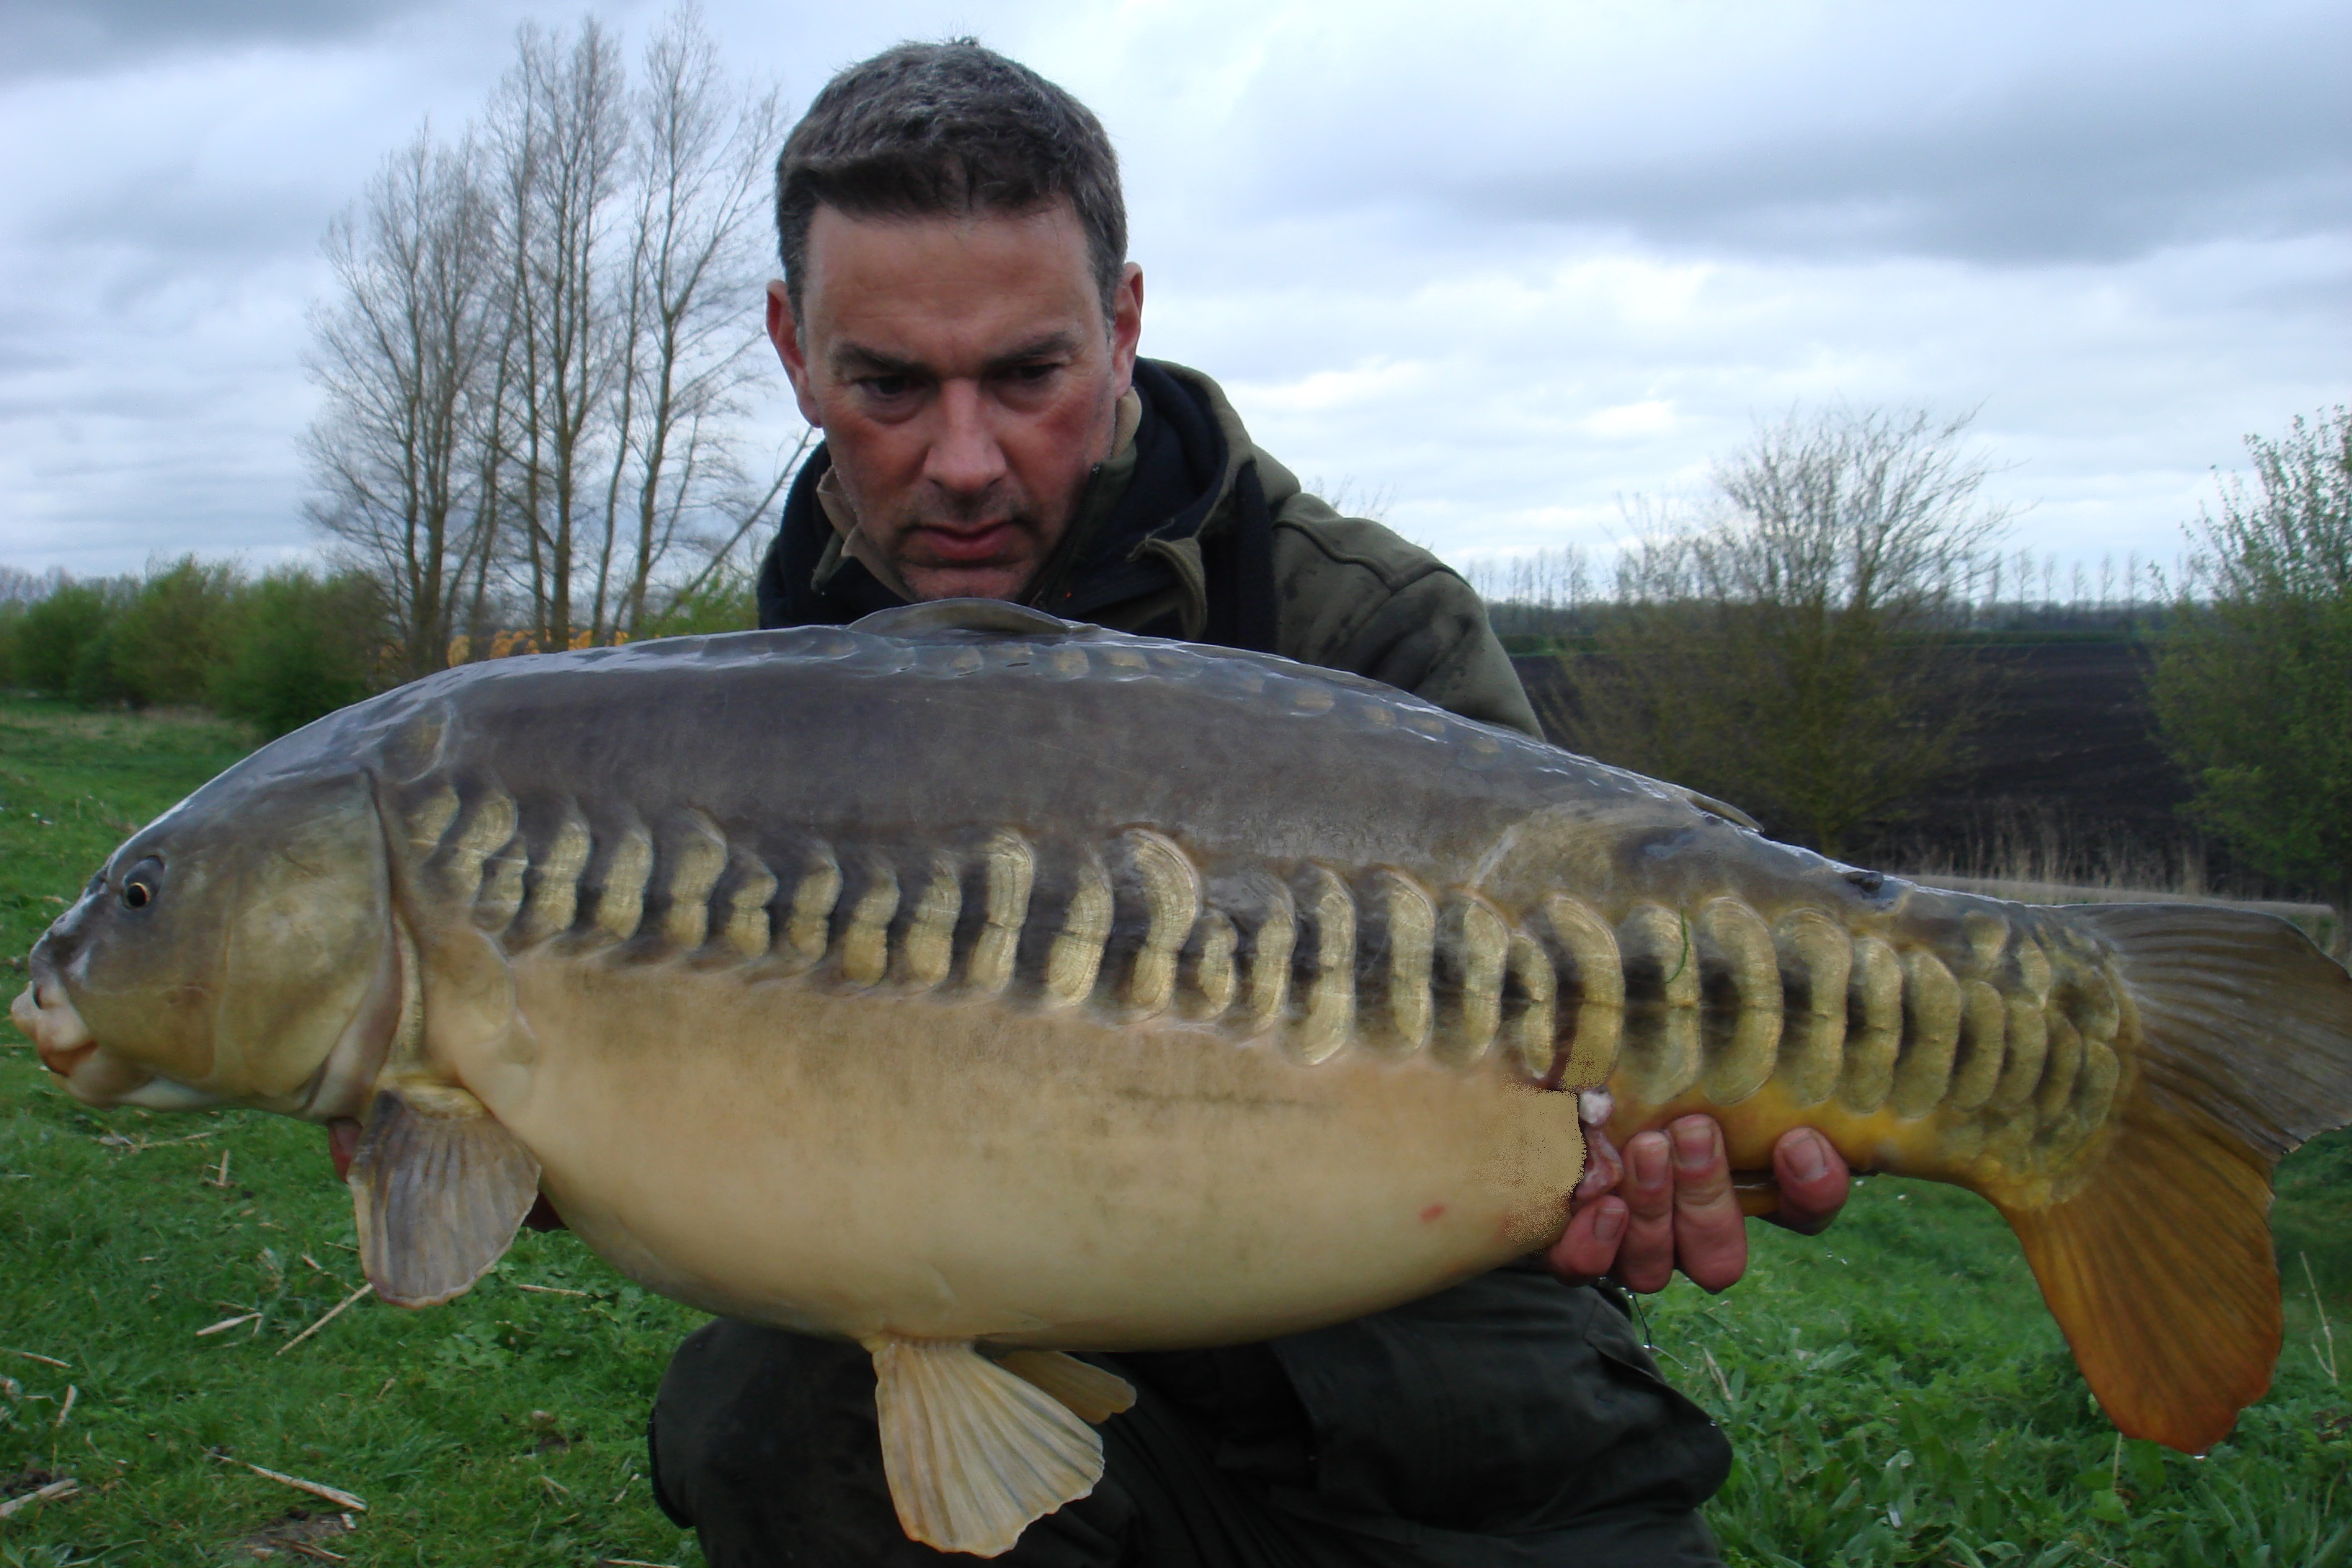 Nice 25-12 linear - smallest of the session.